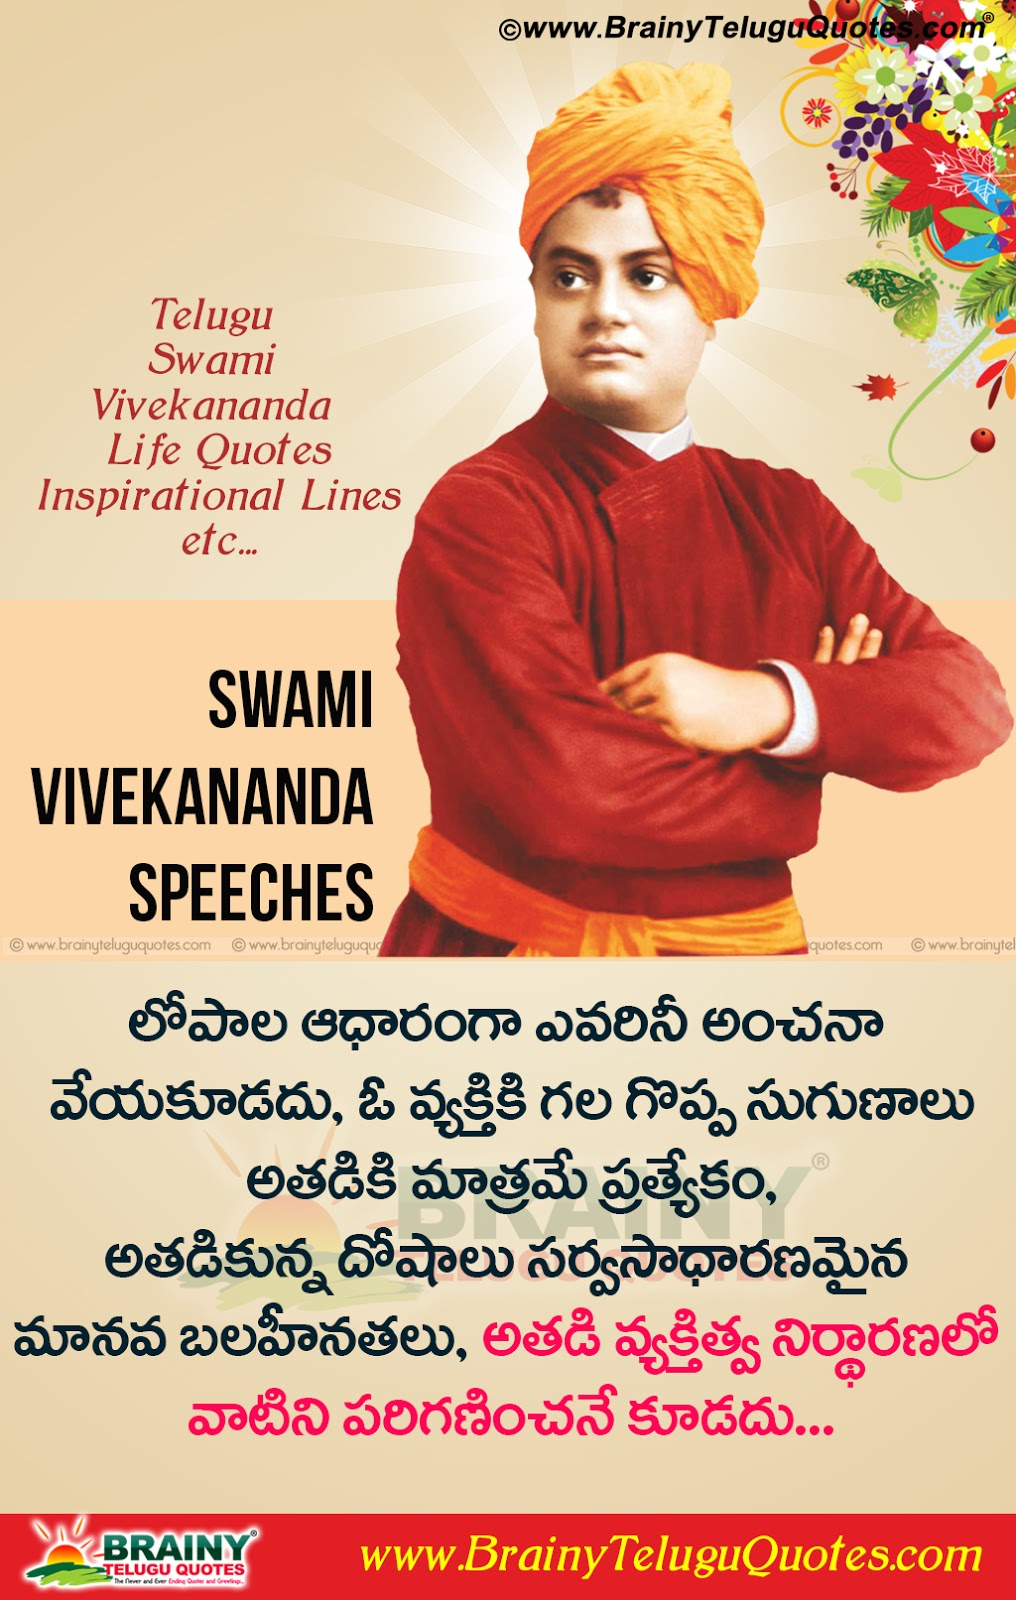 Swami Vivekananda Success Quotes In Hindi: Swami Vivekananda Telugu Success Life Sayings Quotes